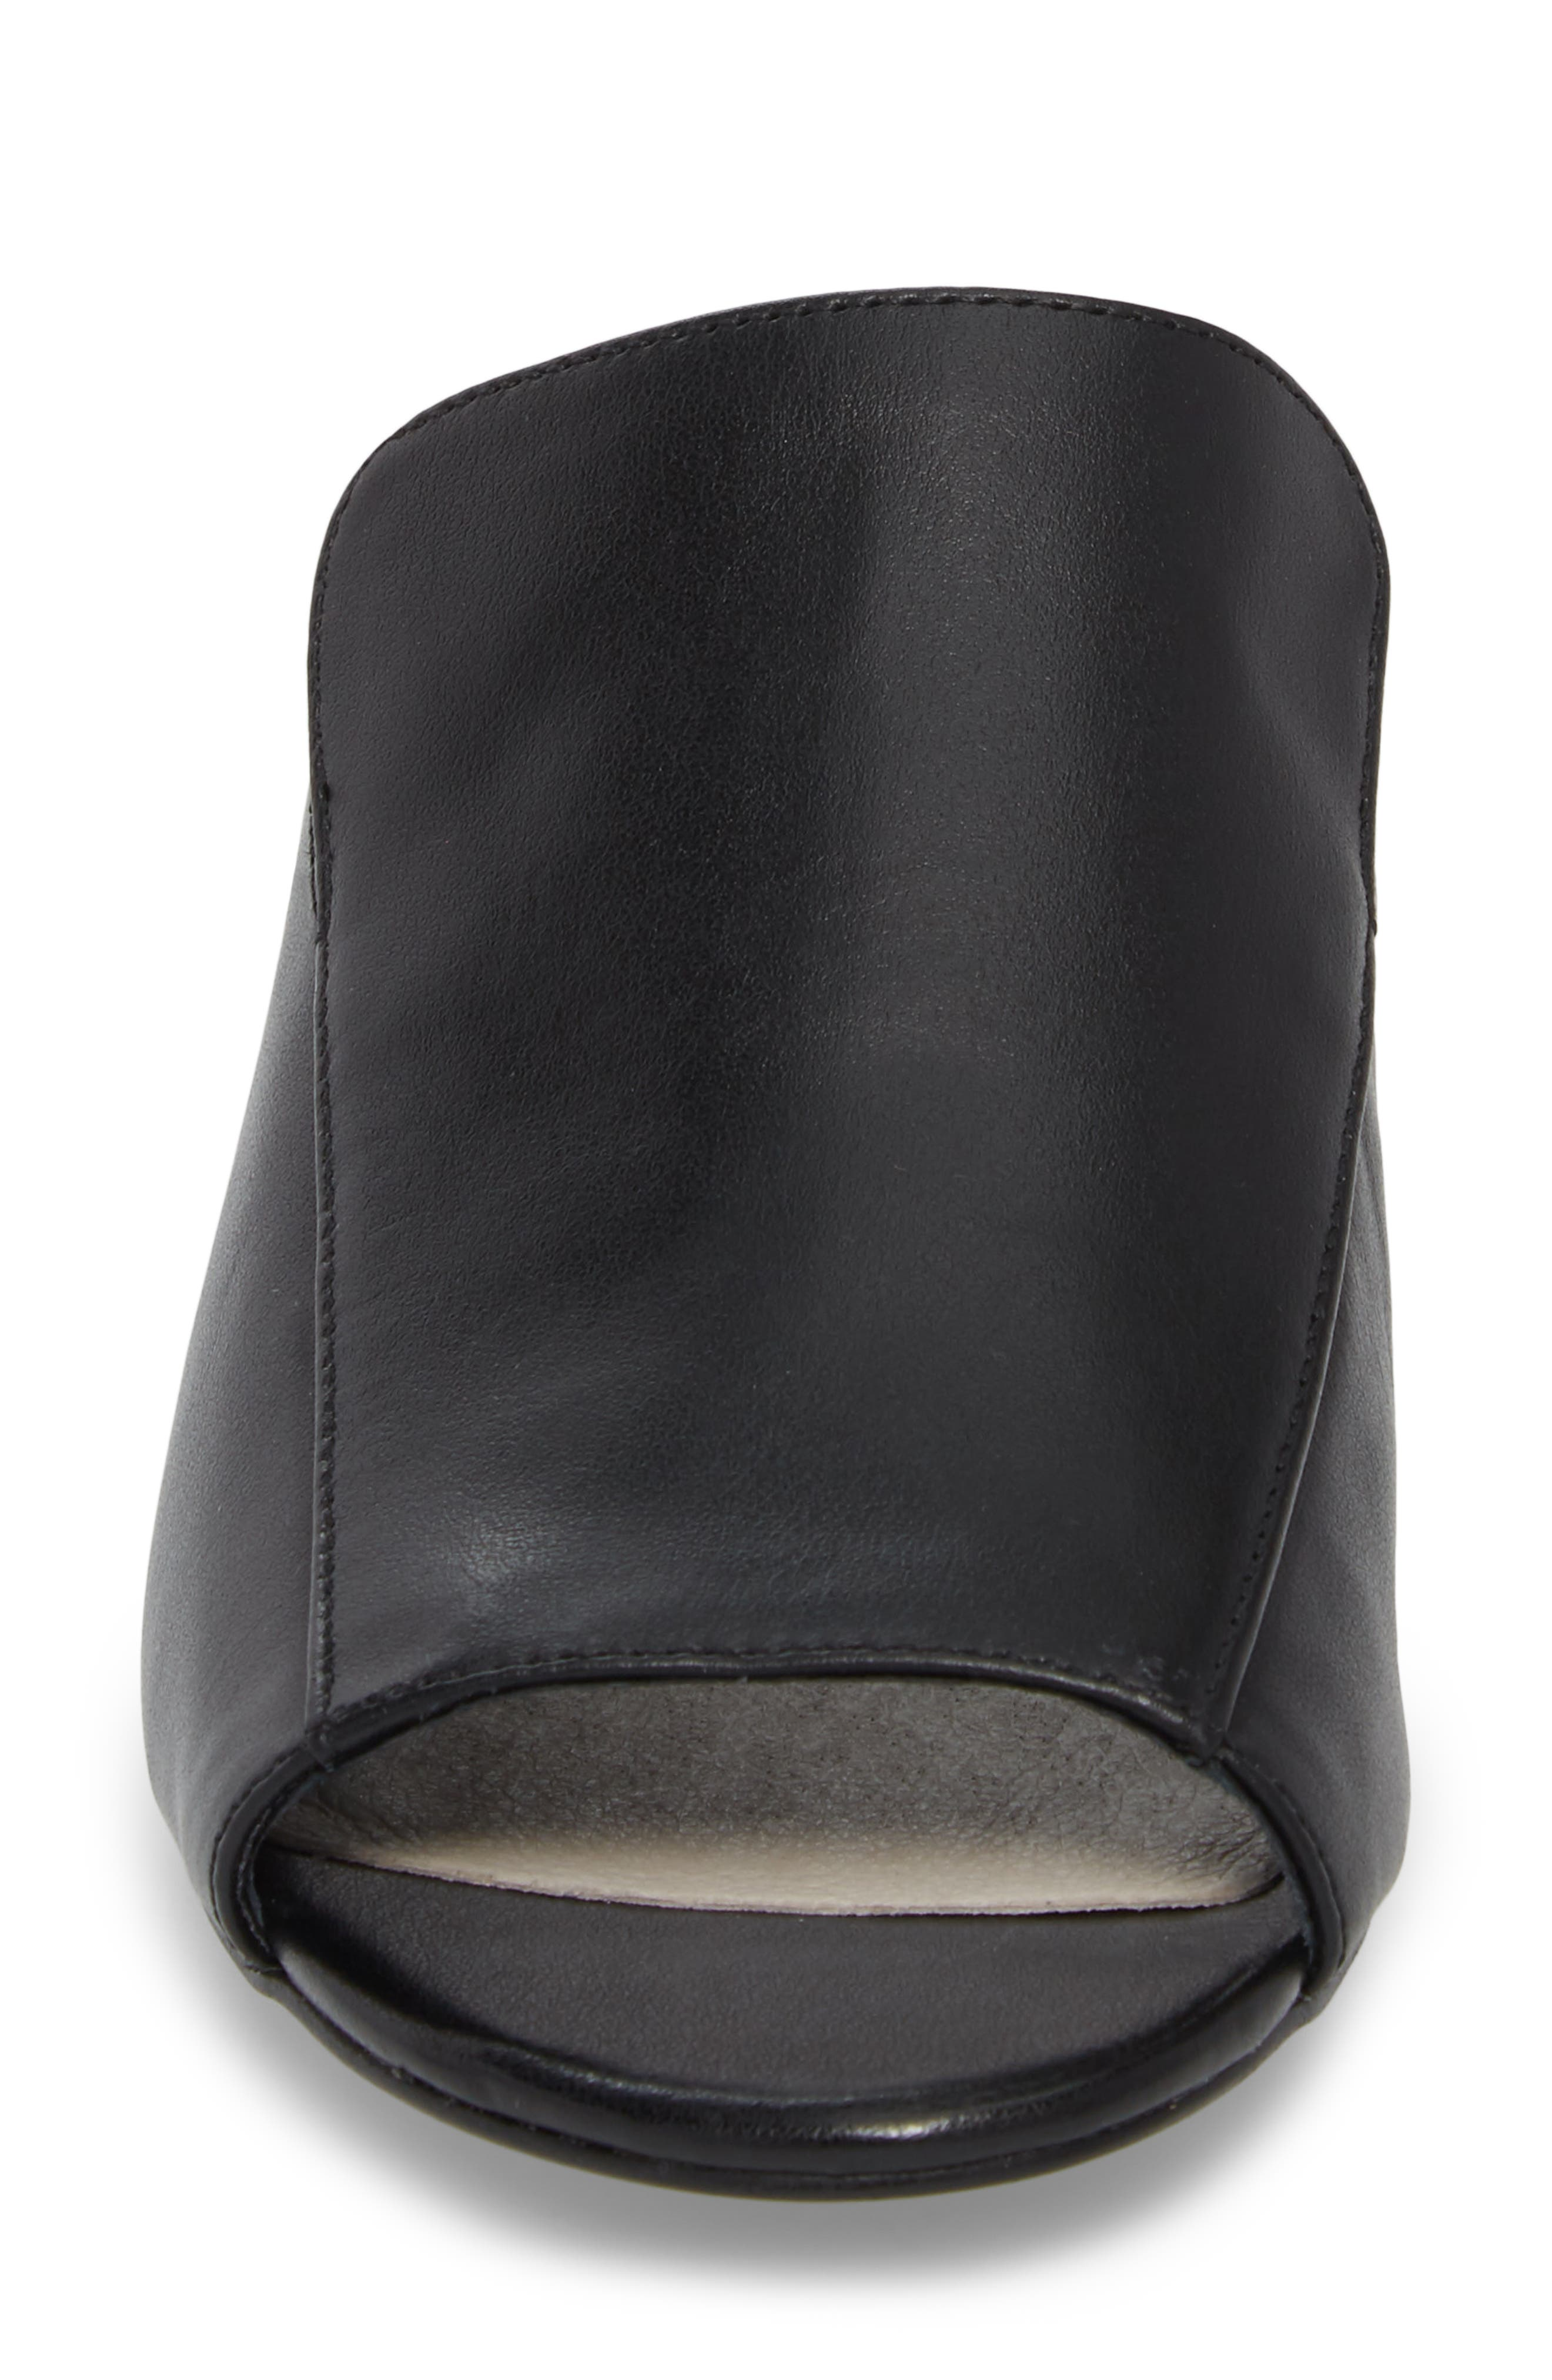 KENNETH COLE NEW YORK,                             Farley Embellished Mule,                             Alternate thumbnail 4, color,                             001